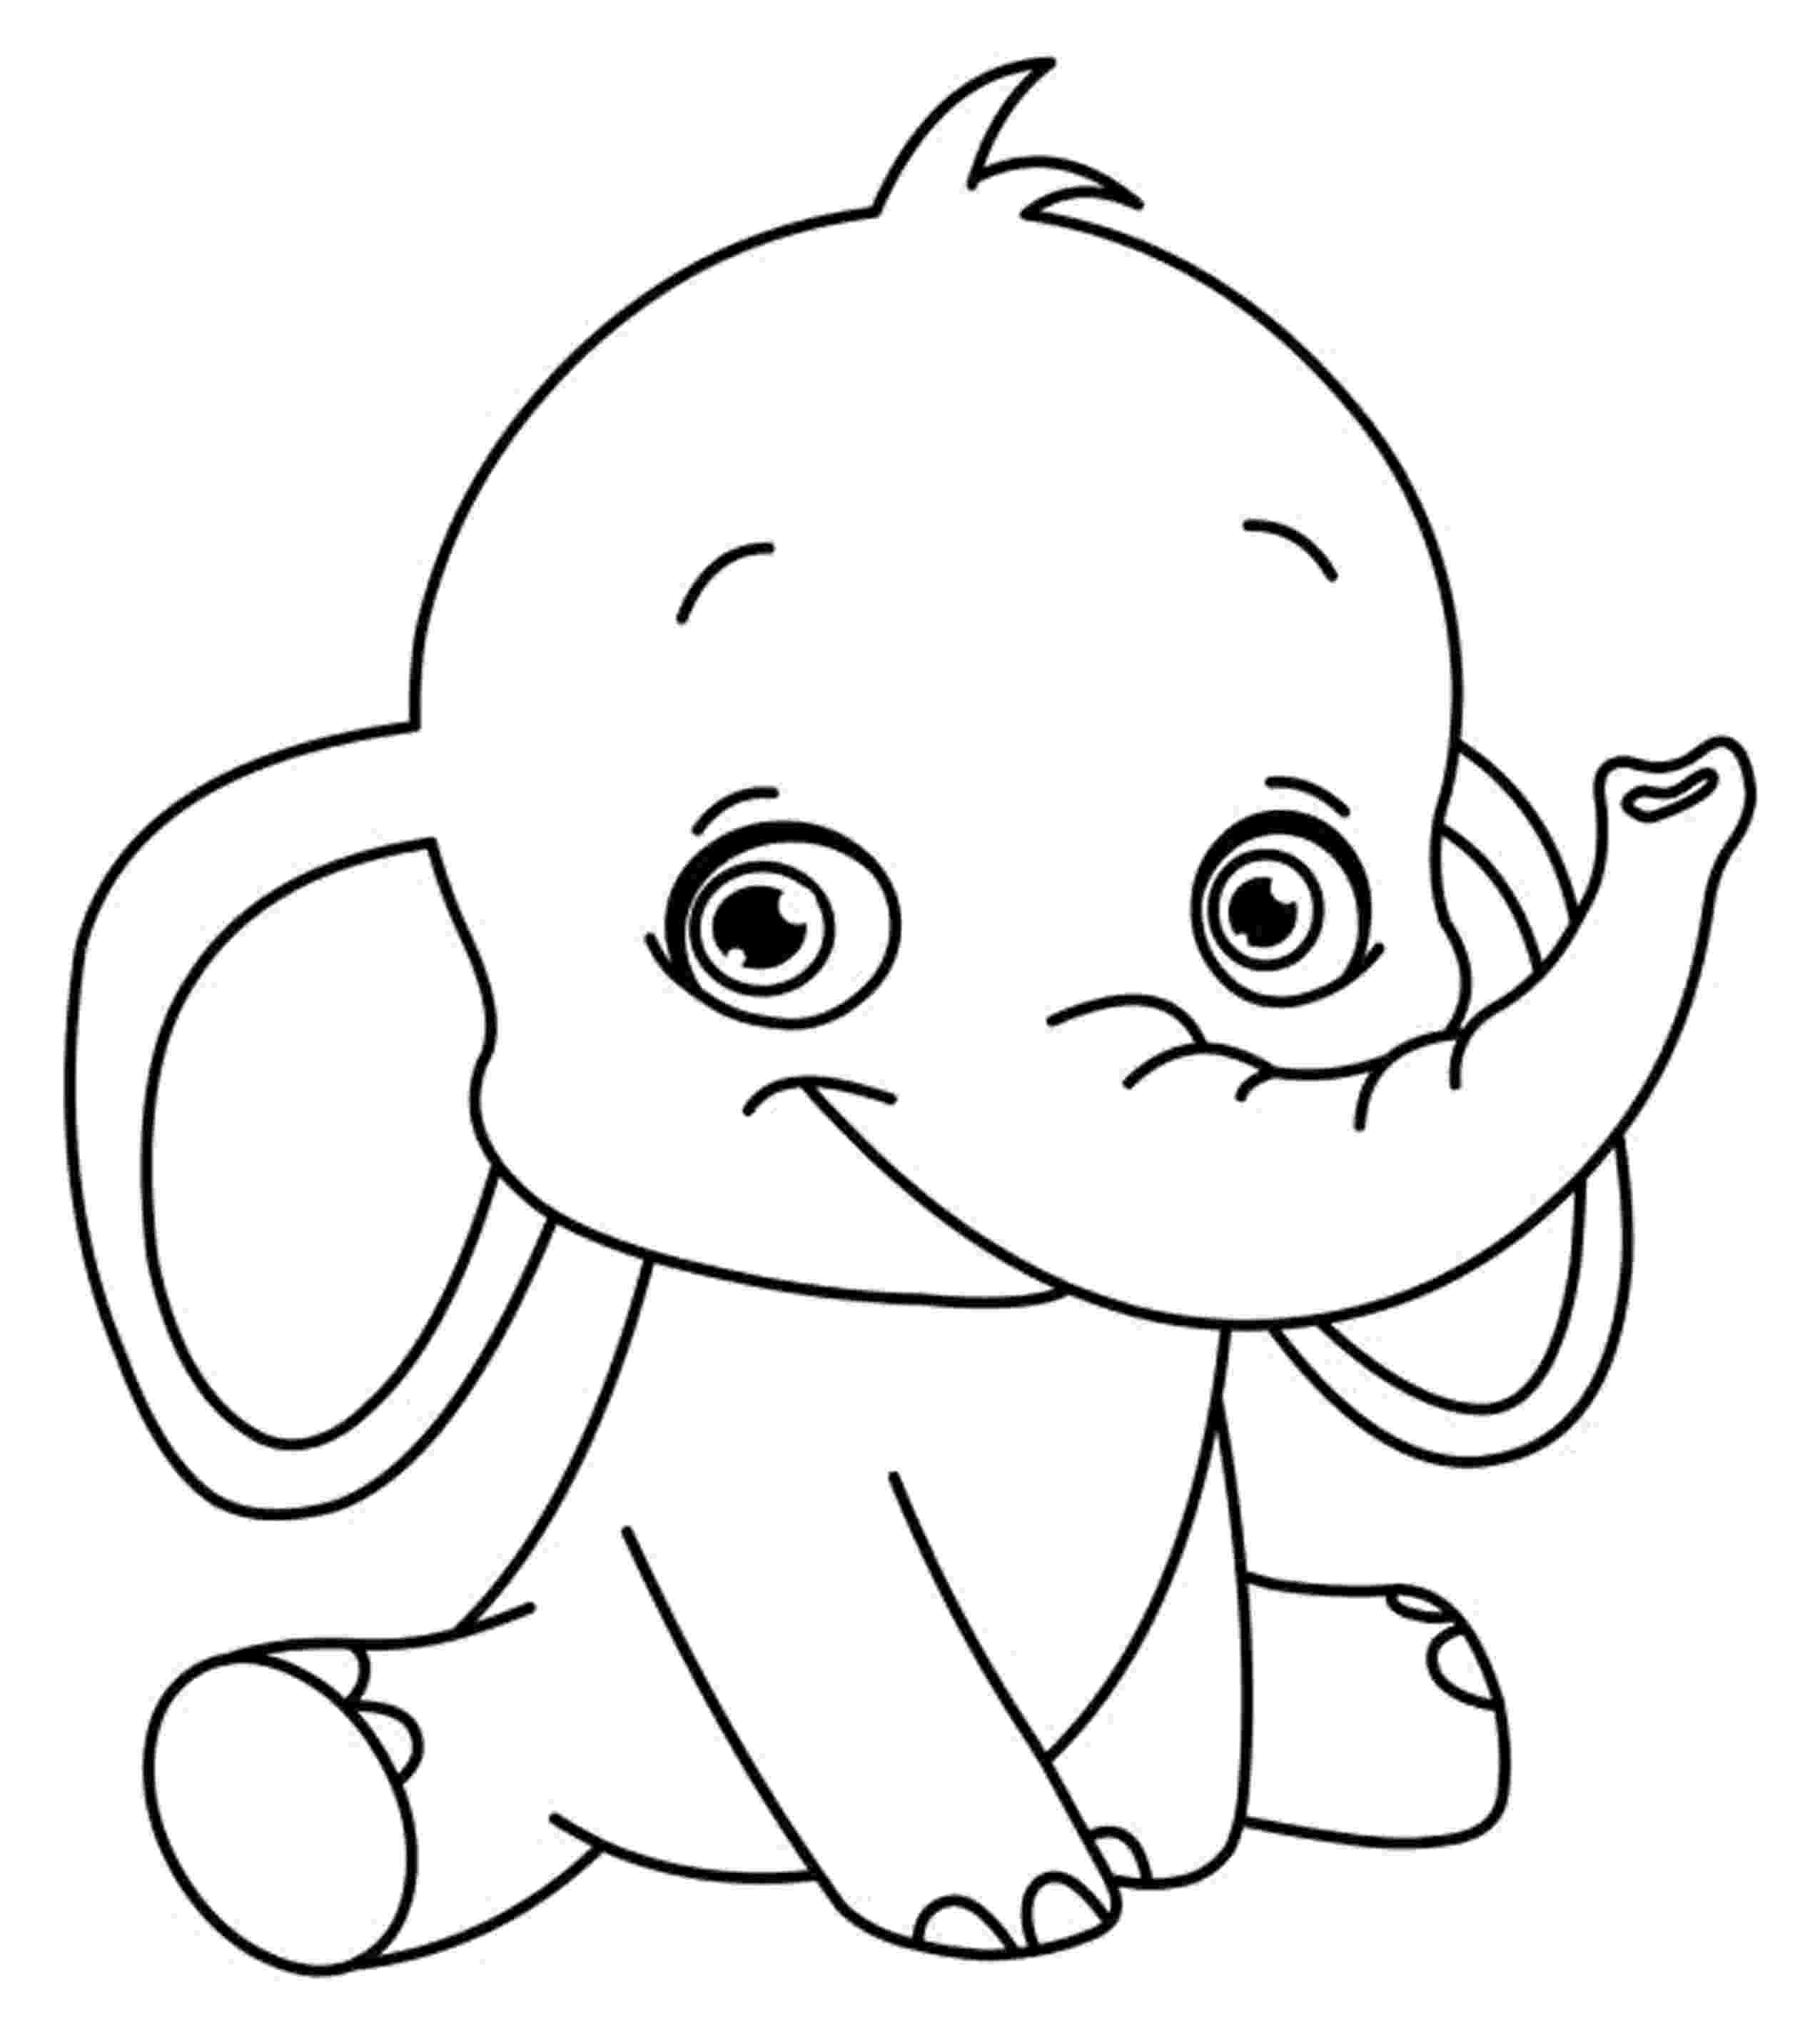 simple pictures to colour coloring pages for 3 4 years old easy coloring pages colour to pictures simple